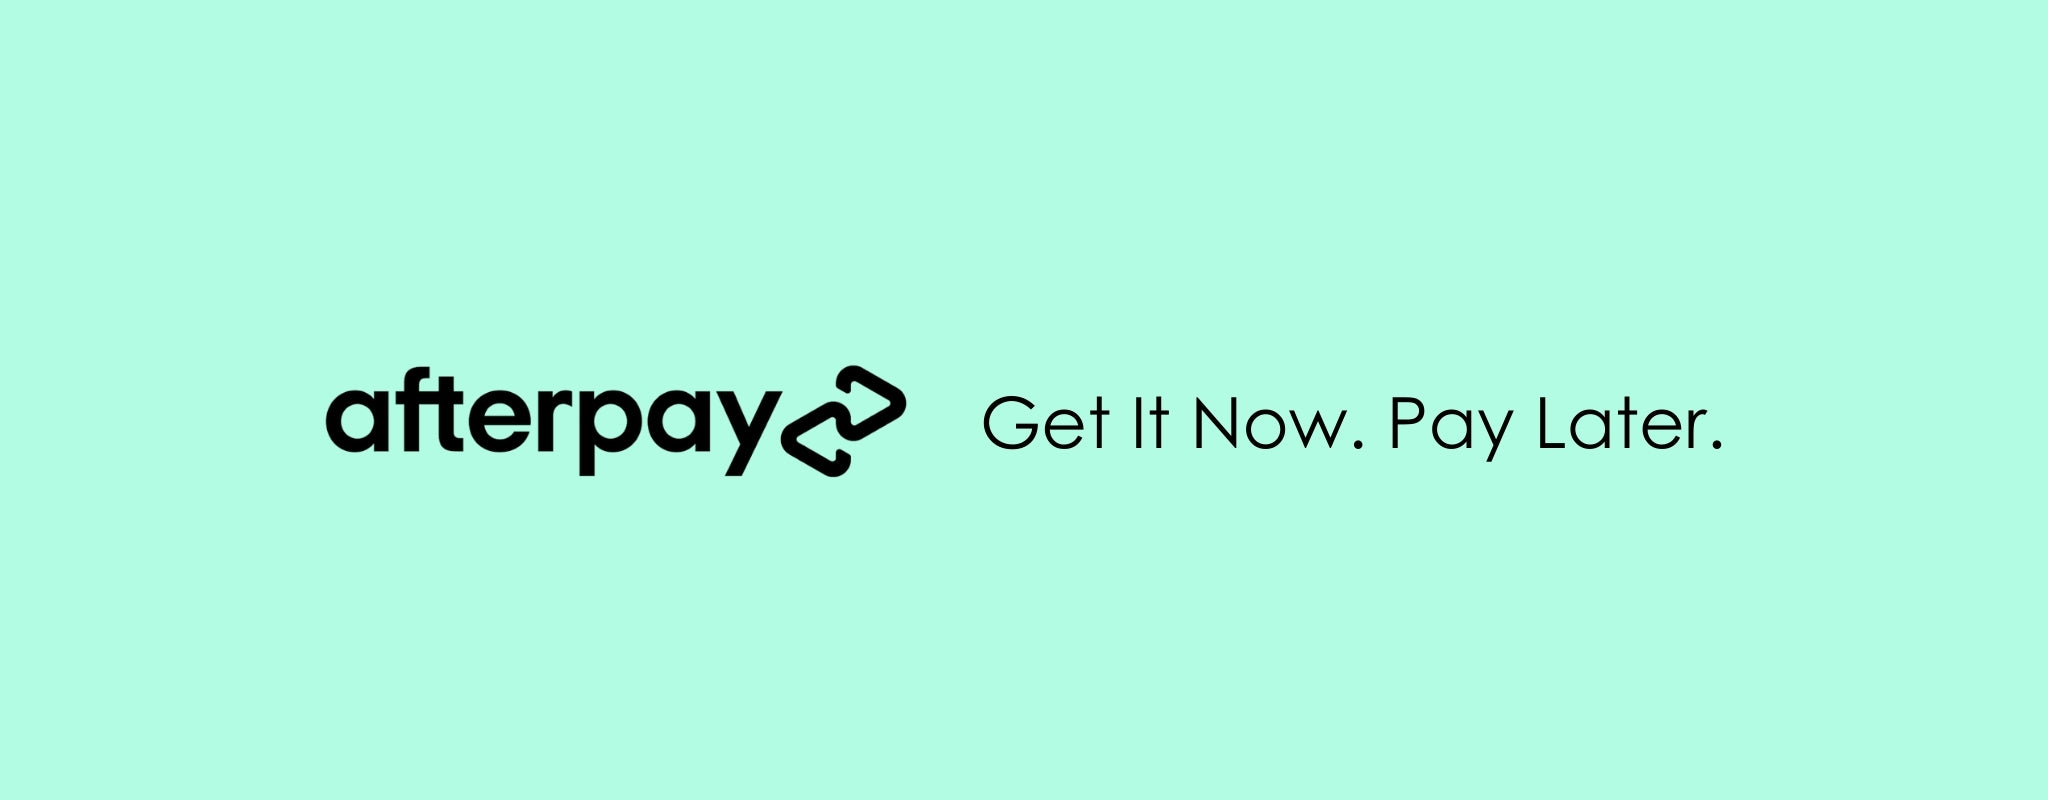 Get it now and pay later with Afterpay at Rose St Trading Co